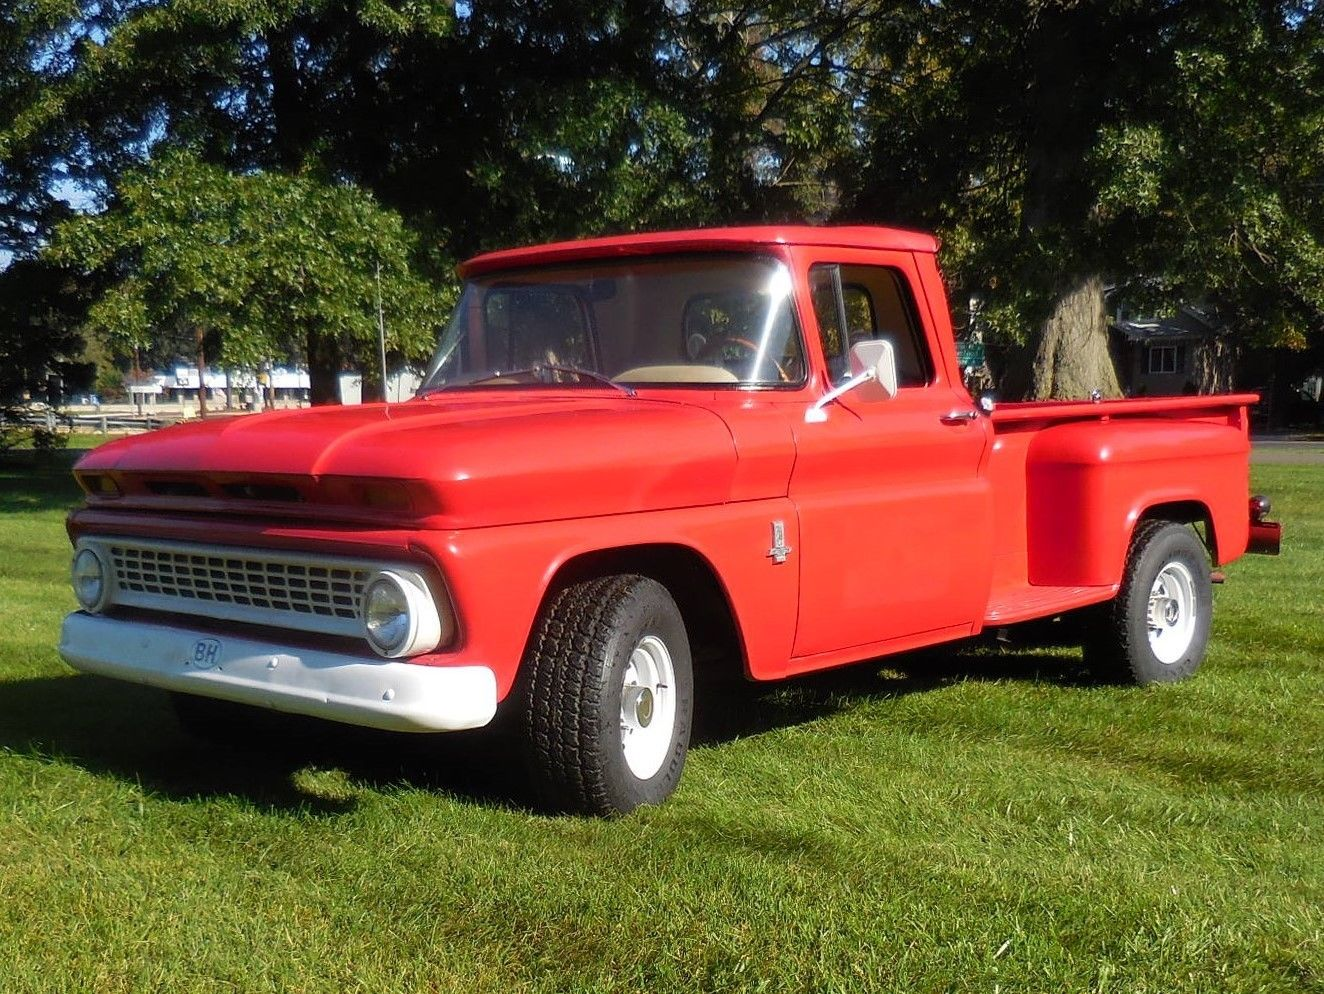 New bed 1963 chevrolet pickups vintage for sale for New beds for sale